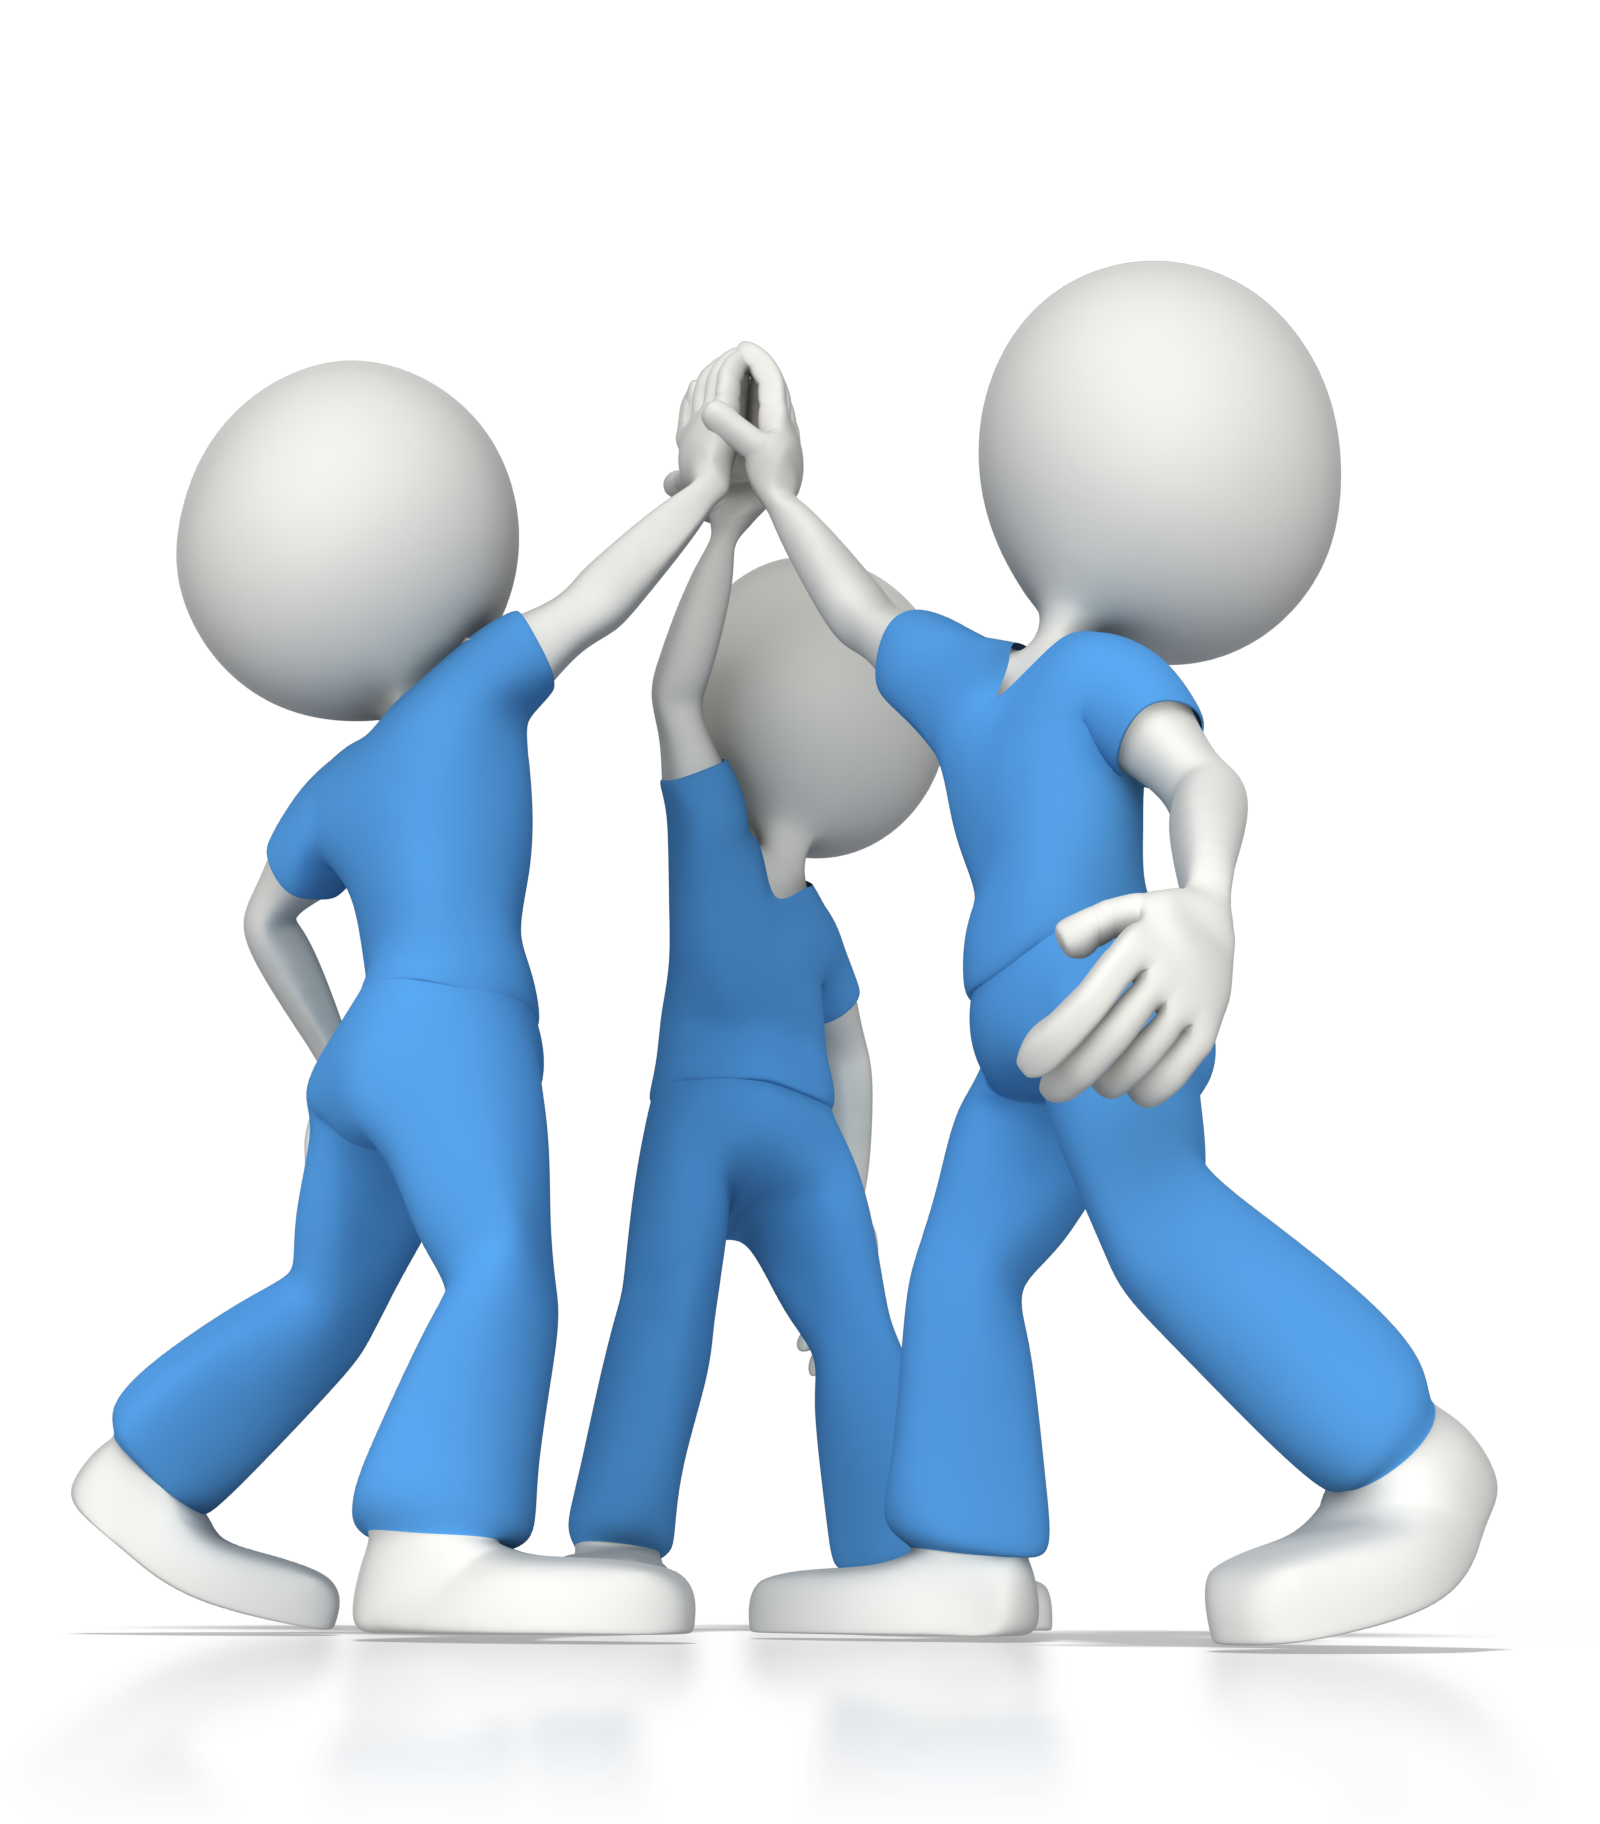 High five surgical team. Teamwork clipart nursing teamwork